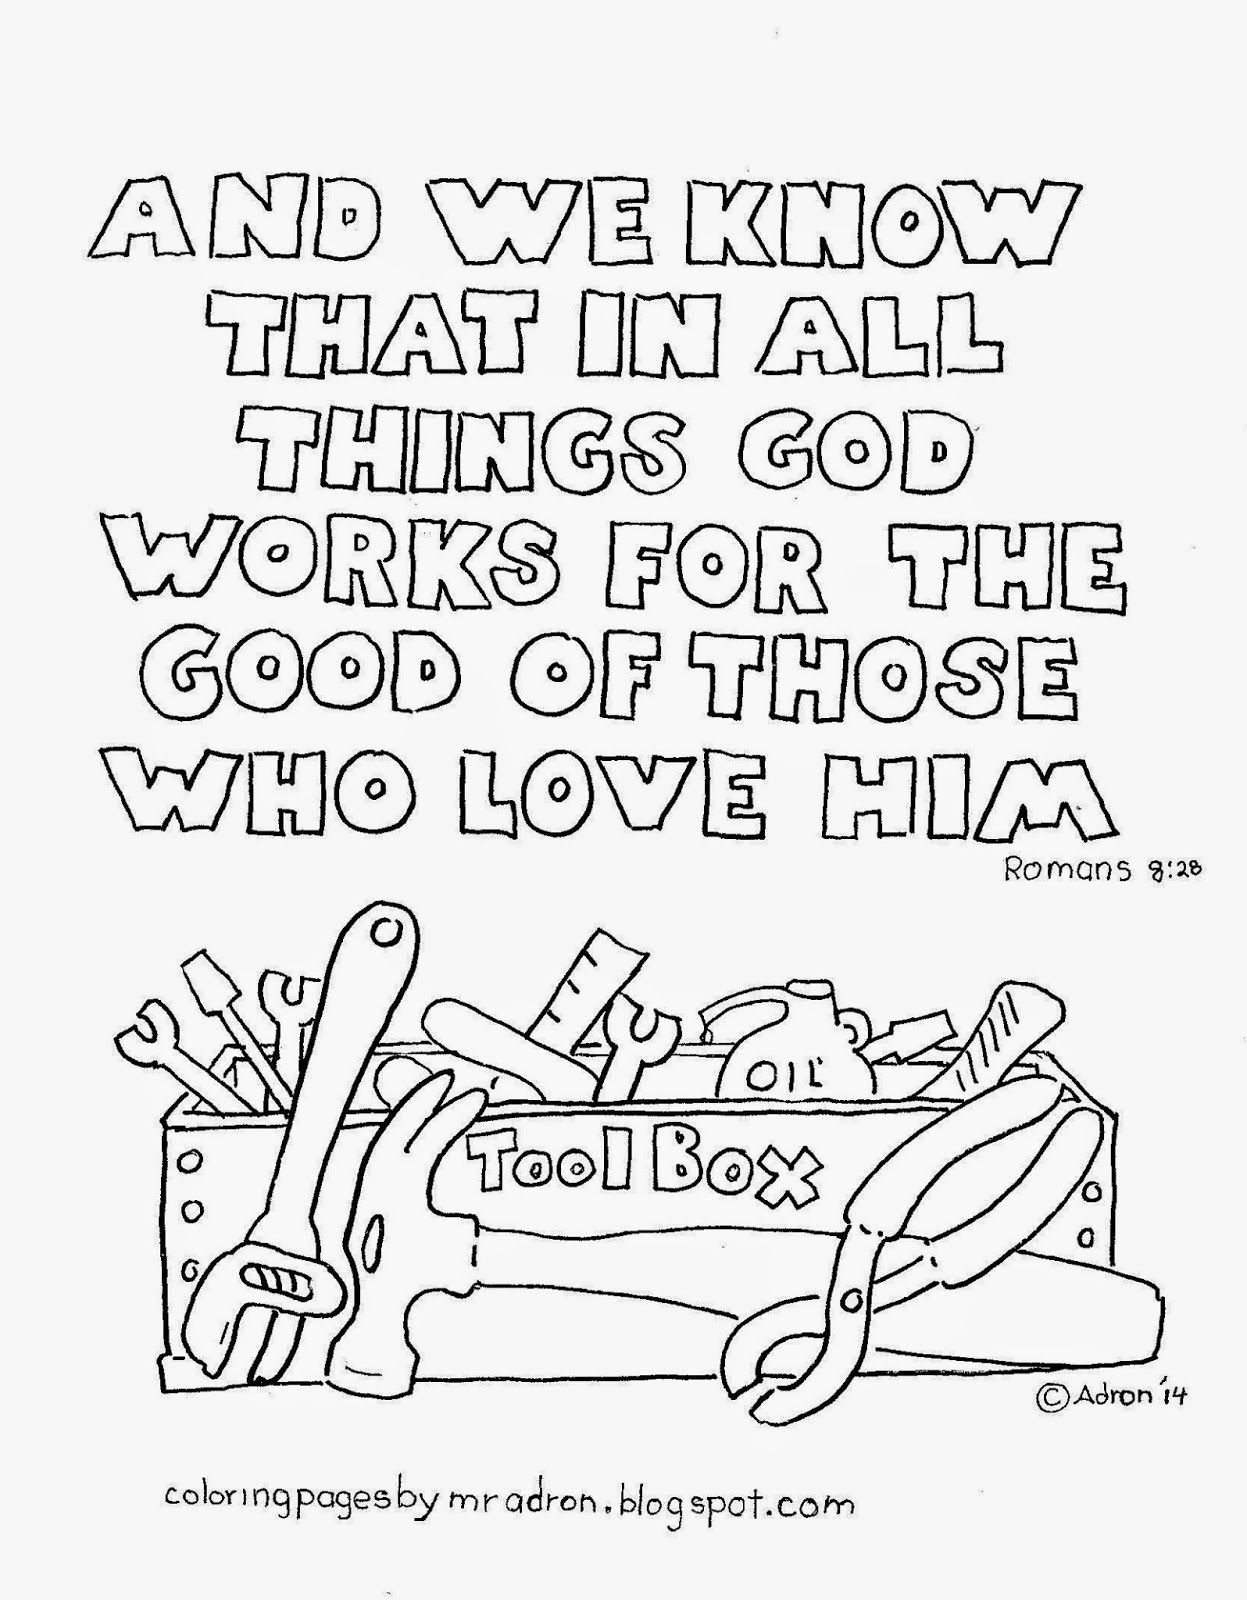 Coloring Pages For Kids By Mr Adron In Everything God Works For Good Free Coloring Pag